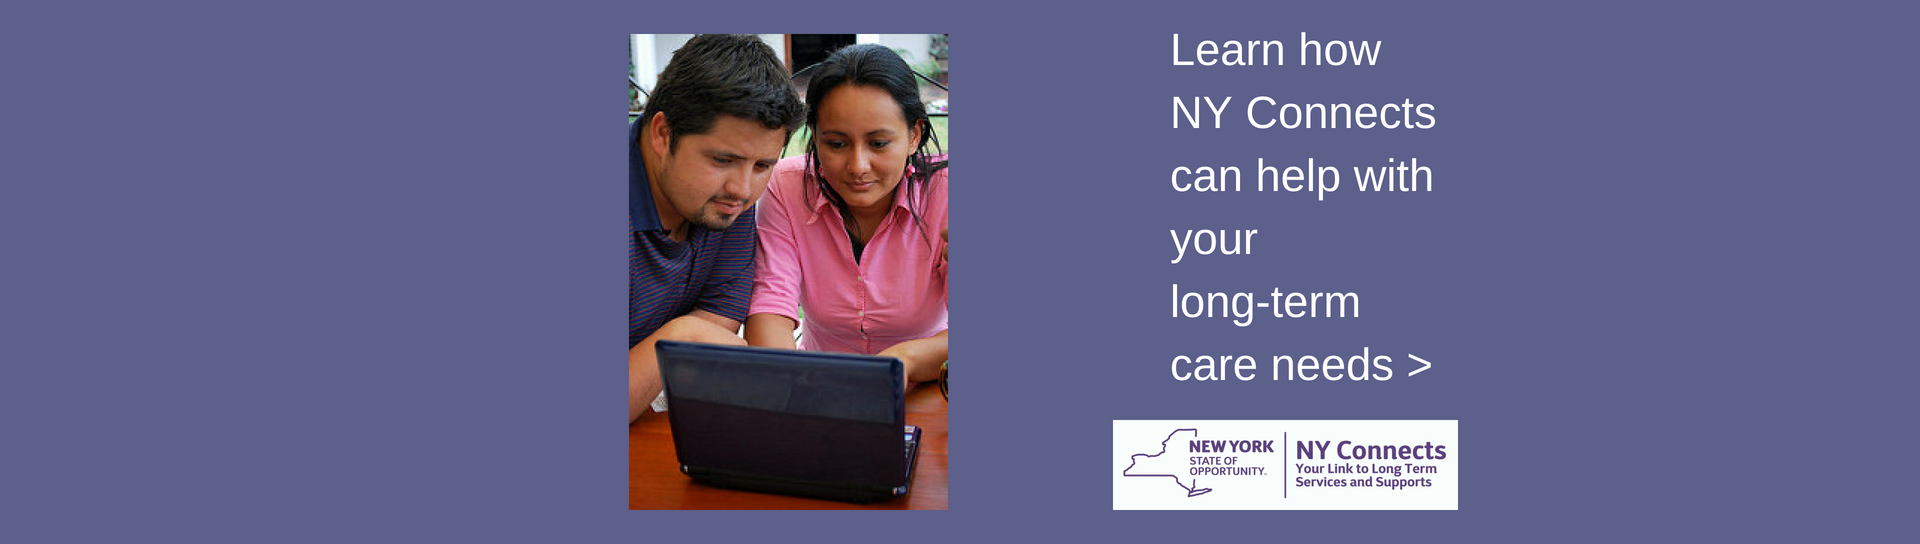 Learn how NY Connects can help with your long-term care needs (click here). Image of couple looking at laptop and NY Connects logo.